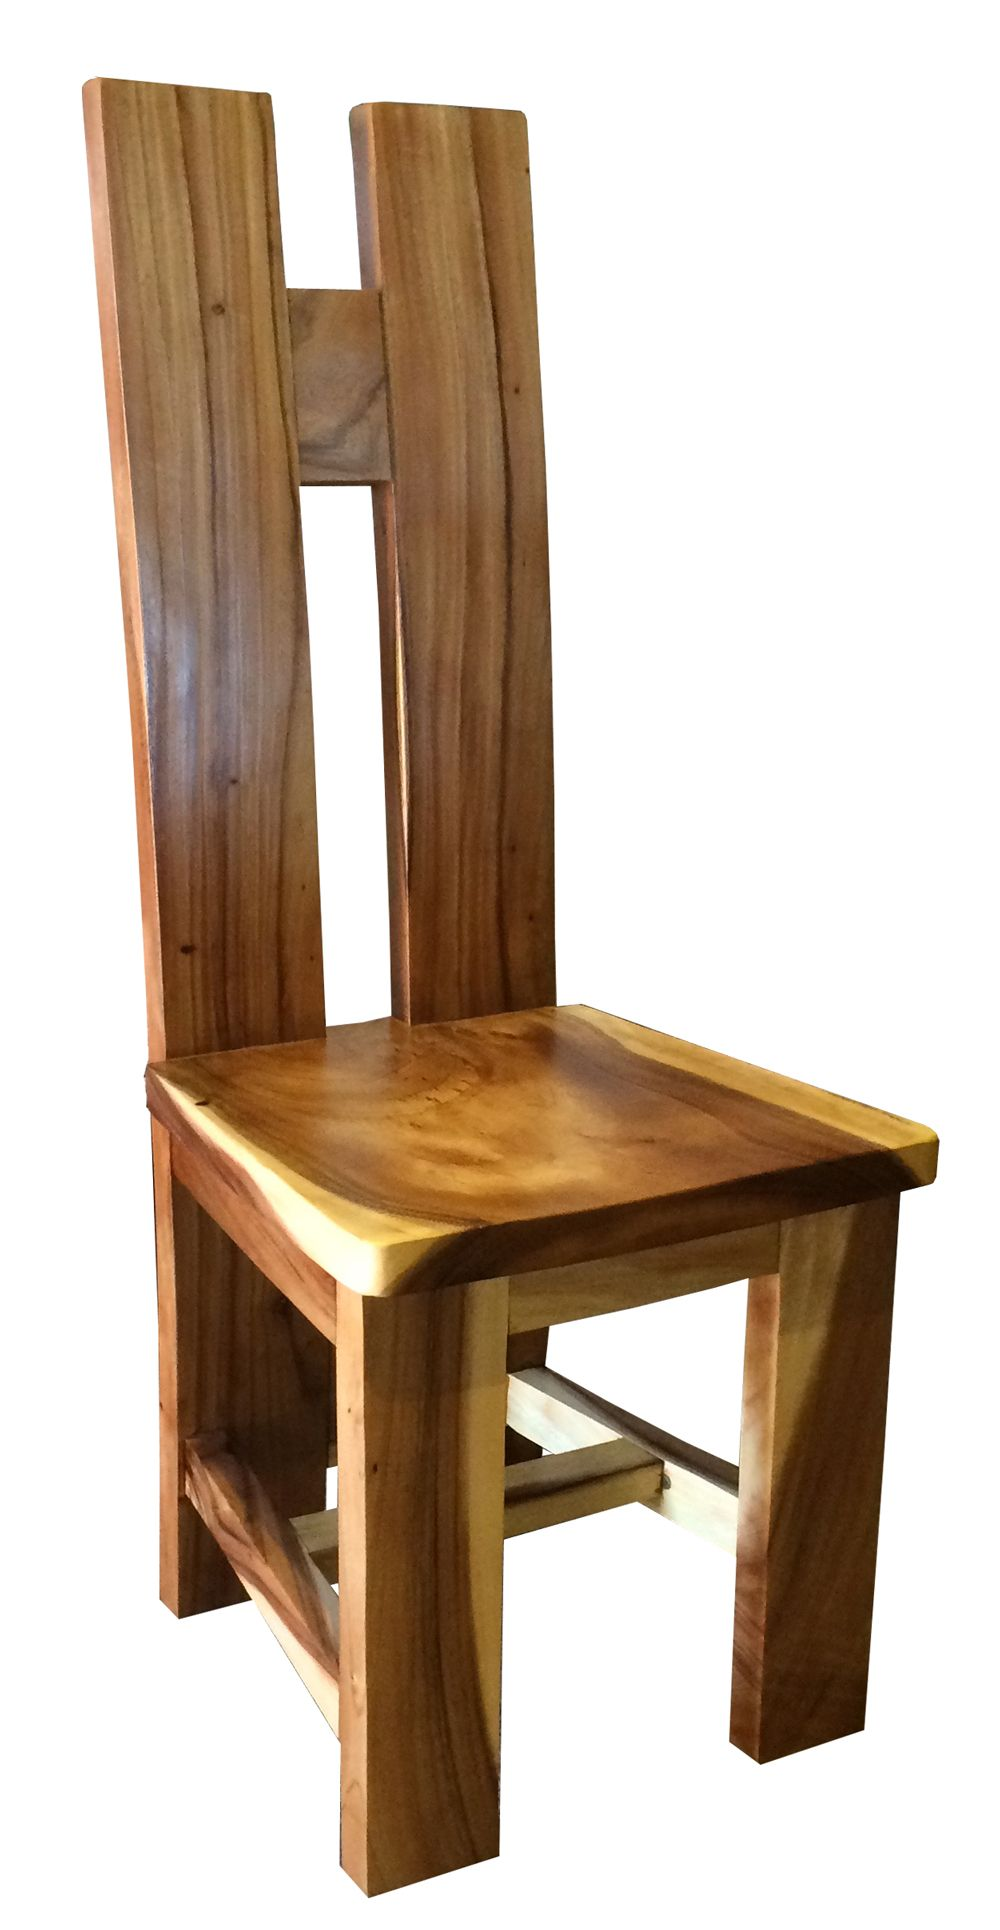 Suar Orinoco Live Edge Dining Chair Wooden Dining Chairs Farmhouse Chairs Wood Chair Design